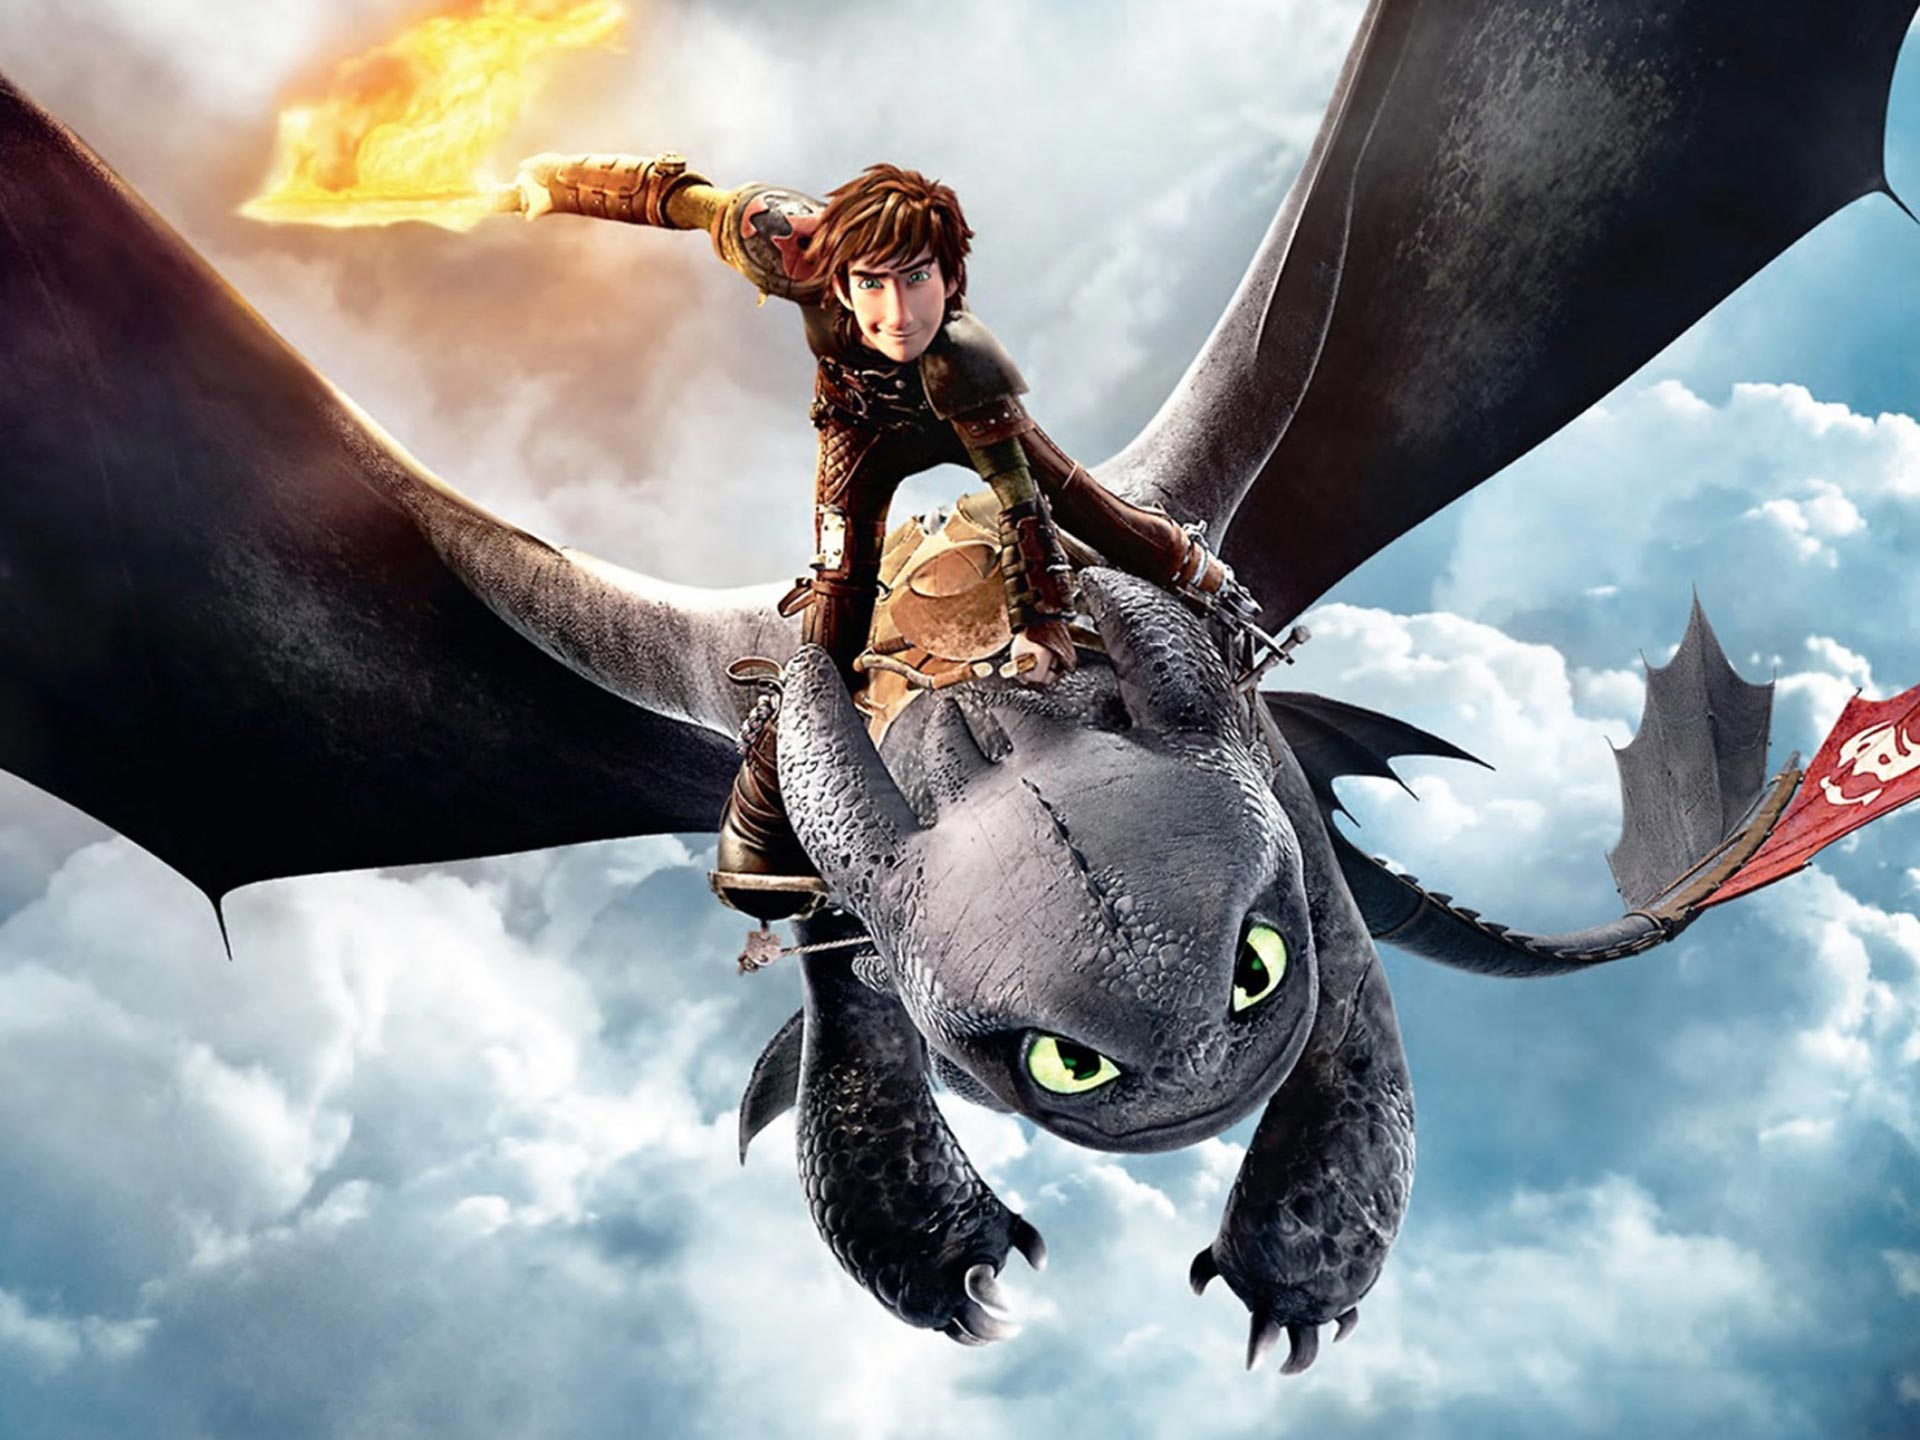 how to train your dragon 2 background desktop wallpaper HOW TO TRAIN YOUR DRAGON 2 Wallpapers